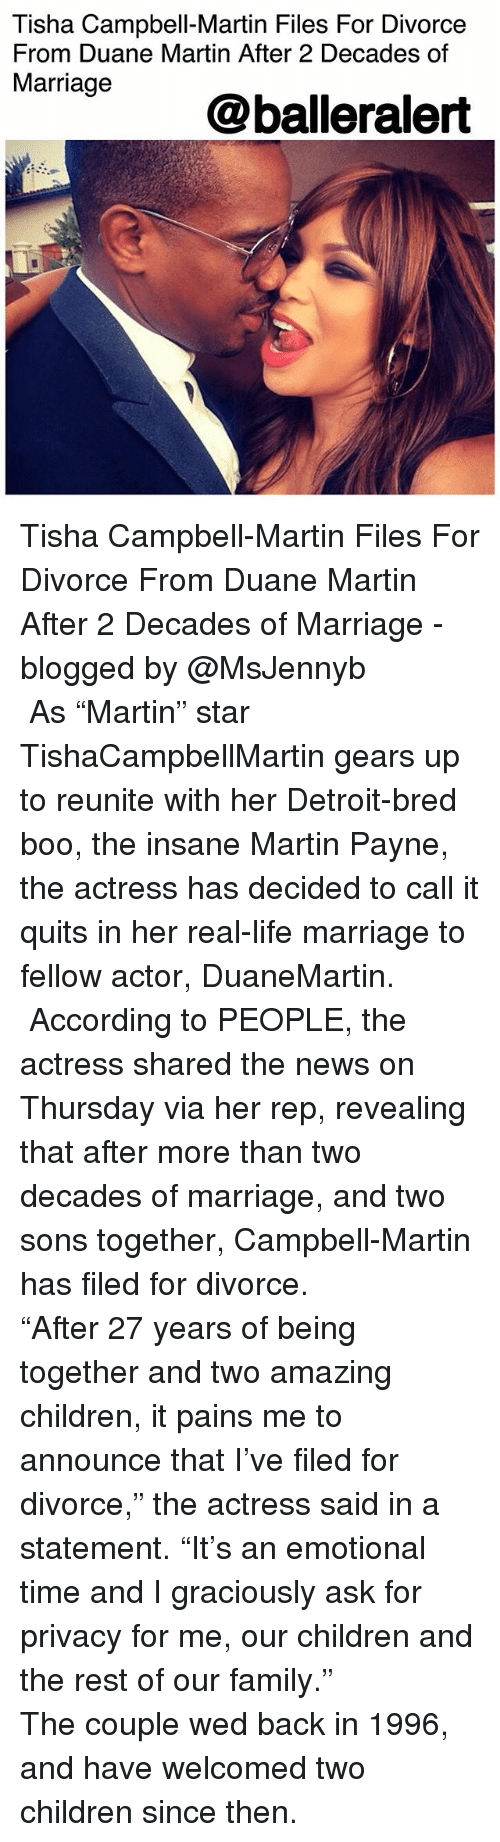 "Boo, Children, and Detroit: Tisha Campbell-Martin Files For Divorce  From Duane Martin After 2 Decades of  Marriage  @balleralert Tisha Campbell-Martin Files For Divorce From Duane Martin After 2 Decades of Marriage - blogged by @MsJennyb ⠀⠀⠀⠀⠀⠀⠀ ⠀⠀⠀⠀⠀⠀⠀ As ""Martin"" star TishaCampbellMartin gears up to reunite with her Detroit-bred boo, the insane Martin Payne, the actress has decided to call it quits in her real-life marriage to fellow actor, DuaneMartin. ⠀⠀⠀⠀⠀⠀⠀ ⠀⠀⠀⠀⠀⠀⠀ According to PEOPLE, the actress shared the news on Thursday via her rep, revealing that after more than two decades of marriage, and two sons together, Campbell-Martin has filed for divorce. ⠀⠀⠀⠀⠀⠀⠀ ⠀⠀⠀⠀⠀⠀⠀ ""After 27 years of being together and two amazing children, it pains me to announce that I've filed for divorce,"" the actress said in a statement. ""It's an emotional time and I graciously ask for privacy for me, our children and the rest of our family."" ⠀⠀⠀⠀⠀⠀⠀ ⠀⠀⠀⠀⠀⠀⠀ The couple wed back in 1996, and have welcomed two children since then."